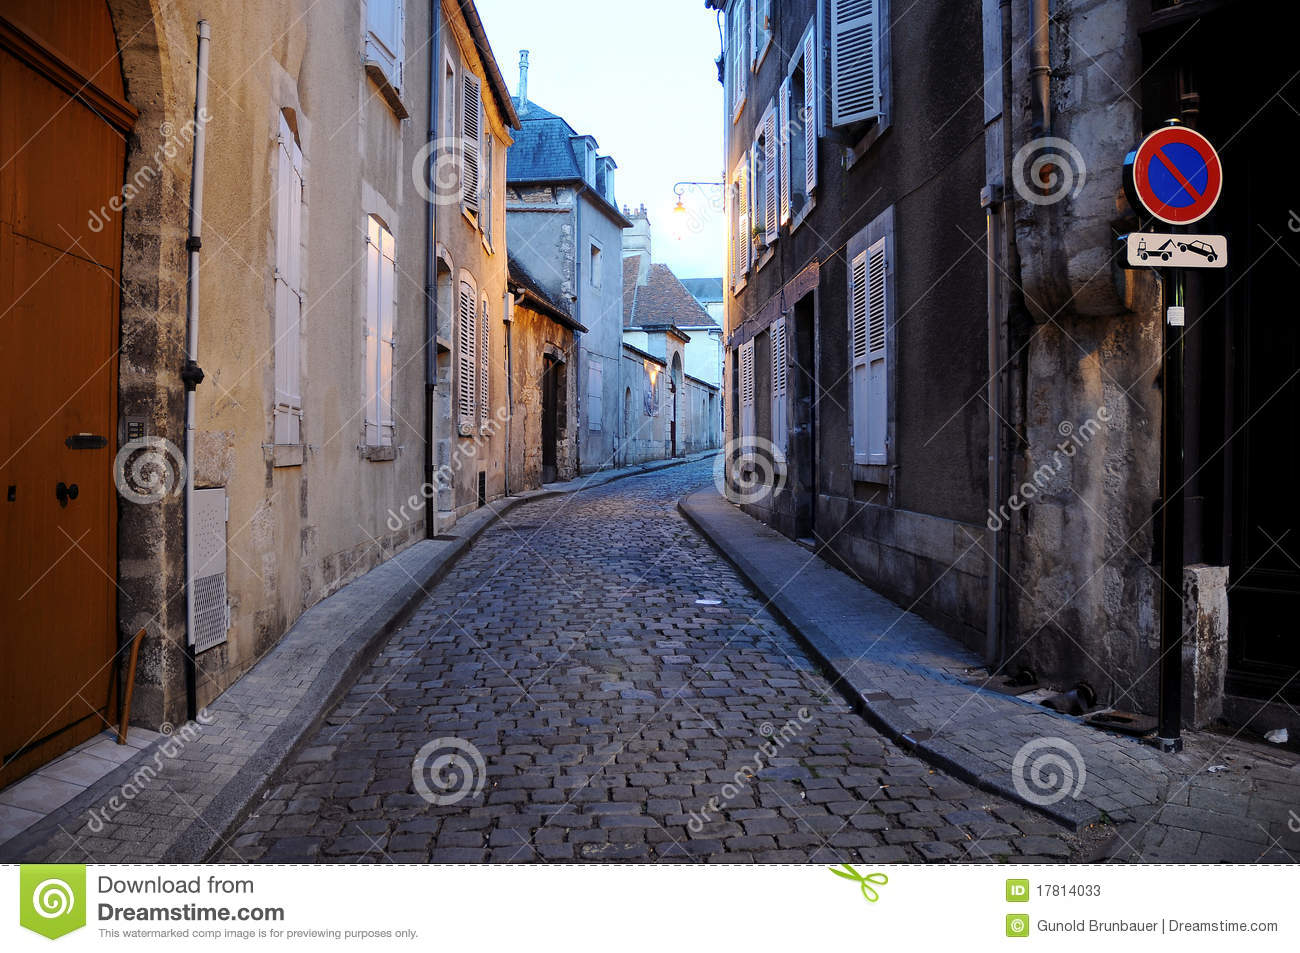 Bourges immagine stock immagine di cobbled natalia 17814033 - Stock industriel bourges ...